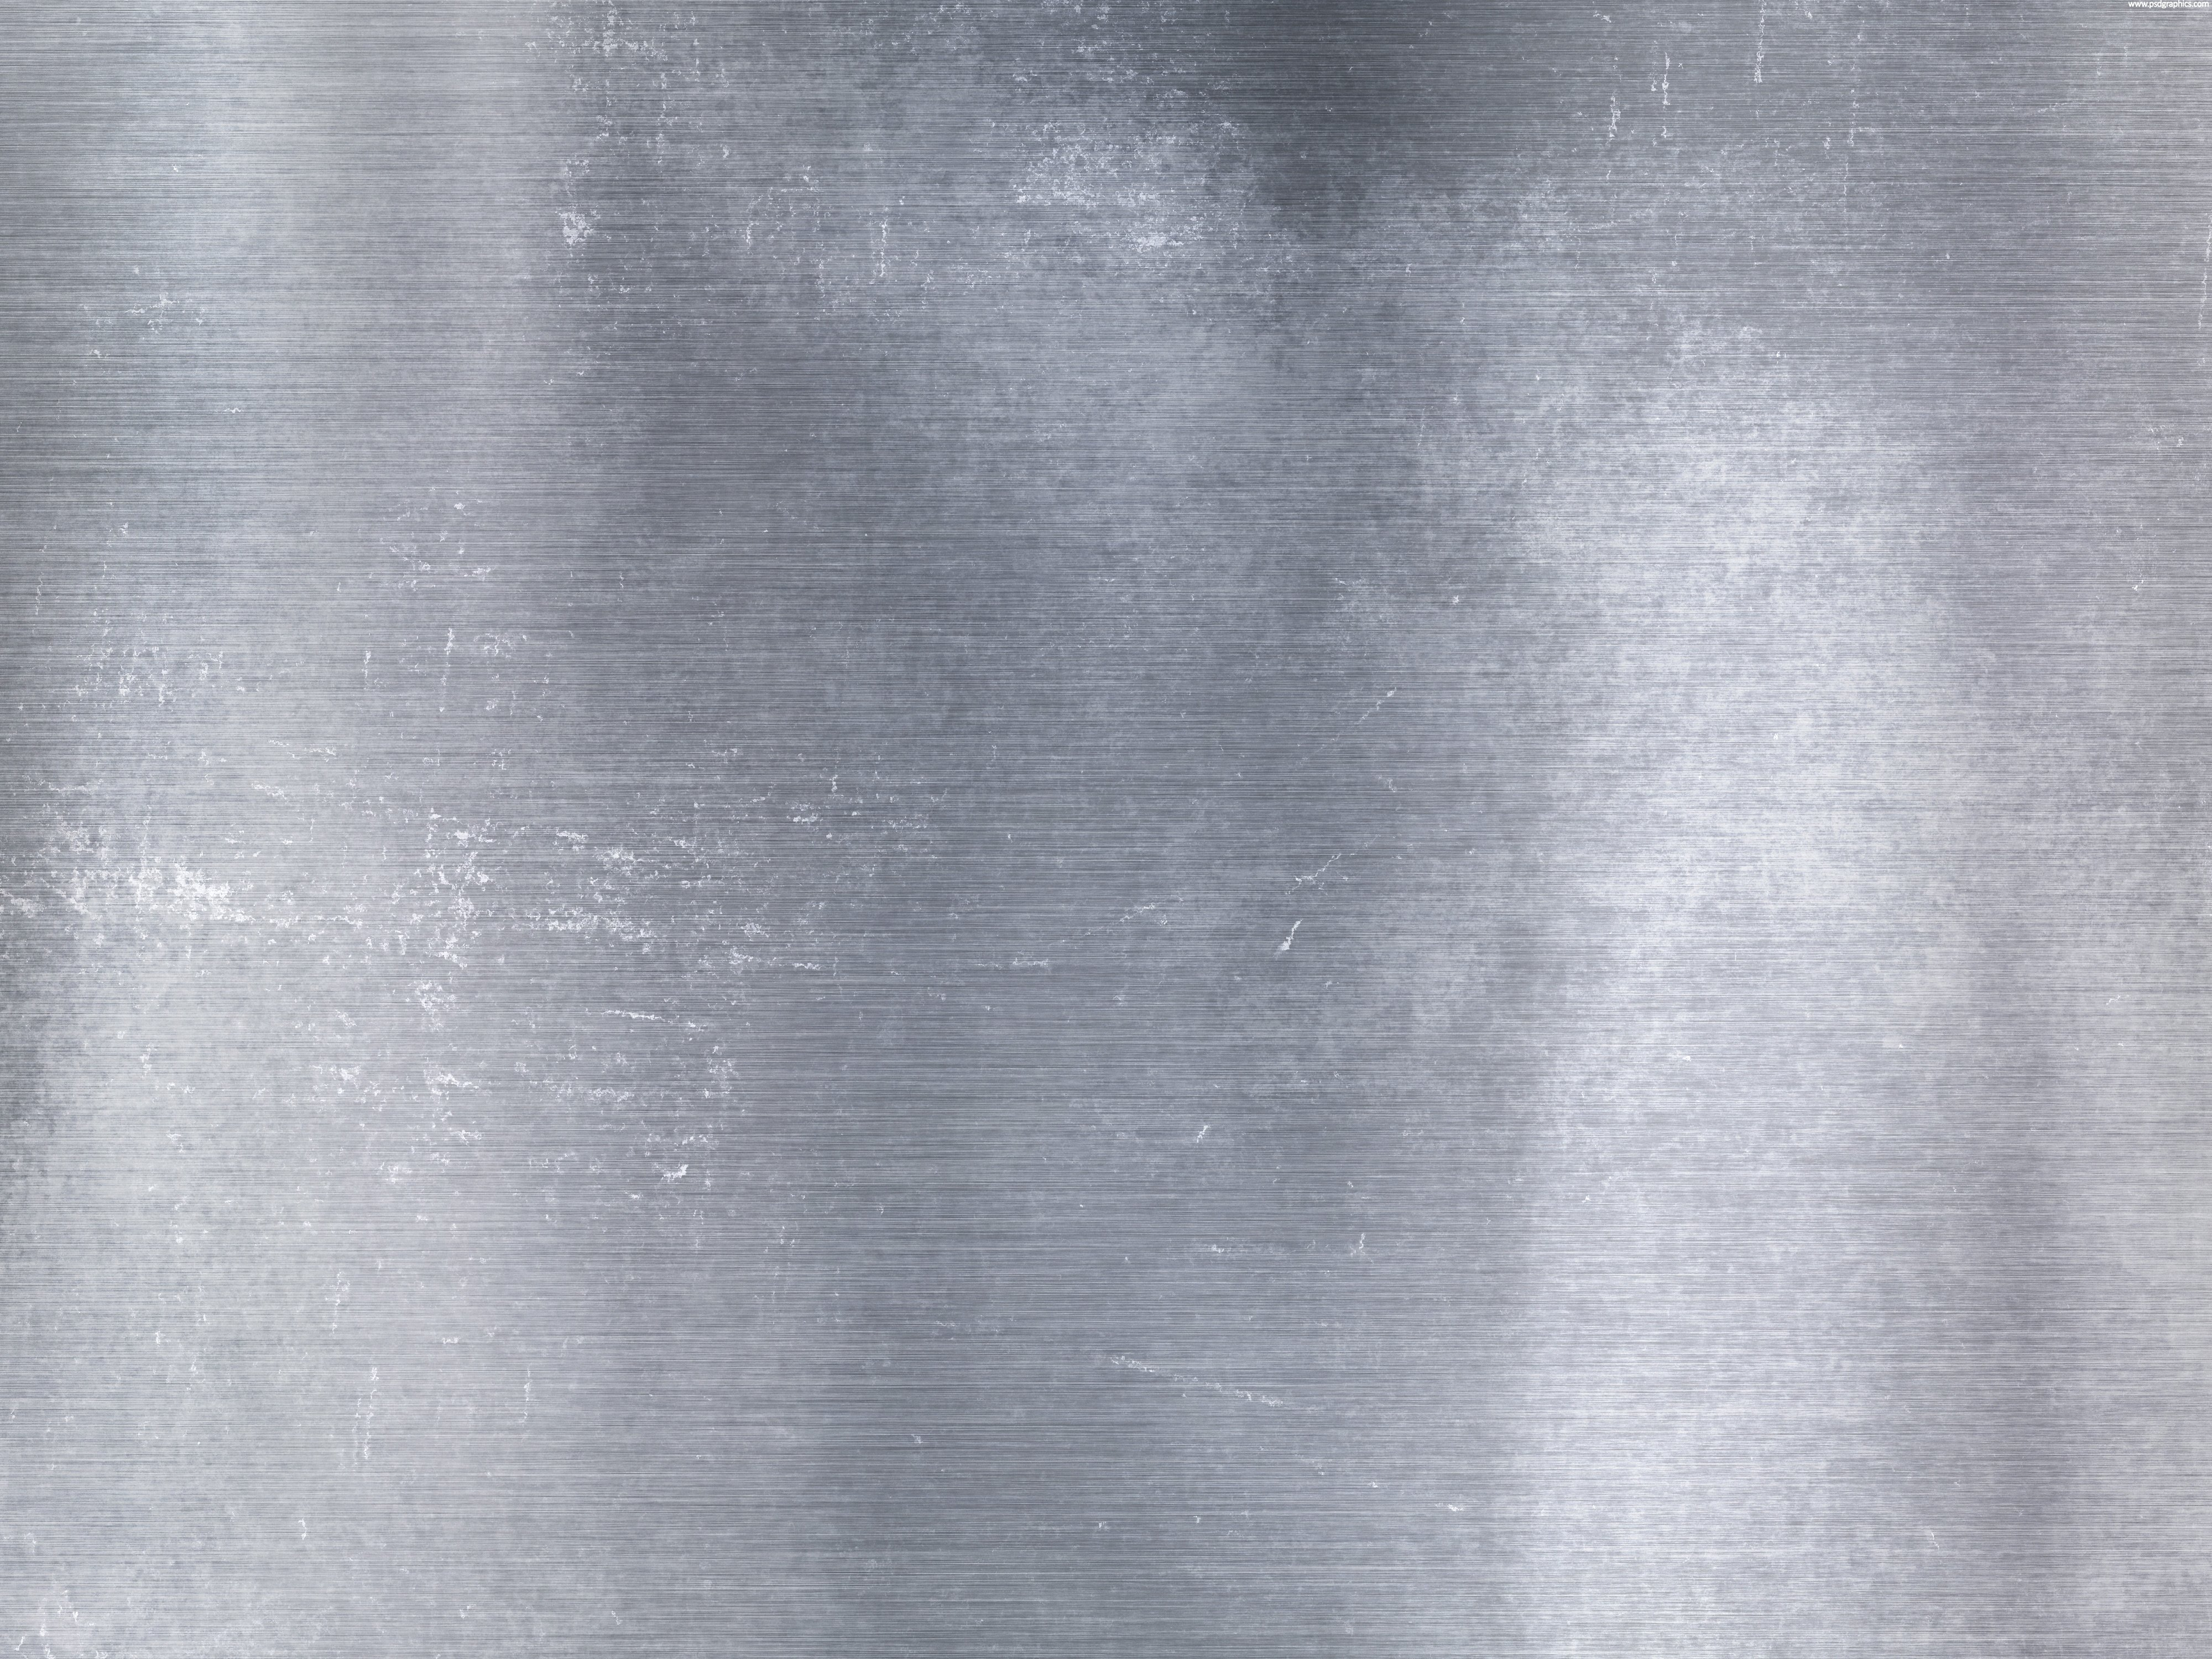 Brushed Silver Metallic Background Top Pictures Gallery Online 4000x3000